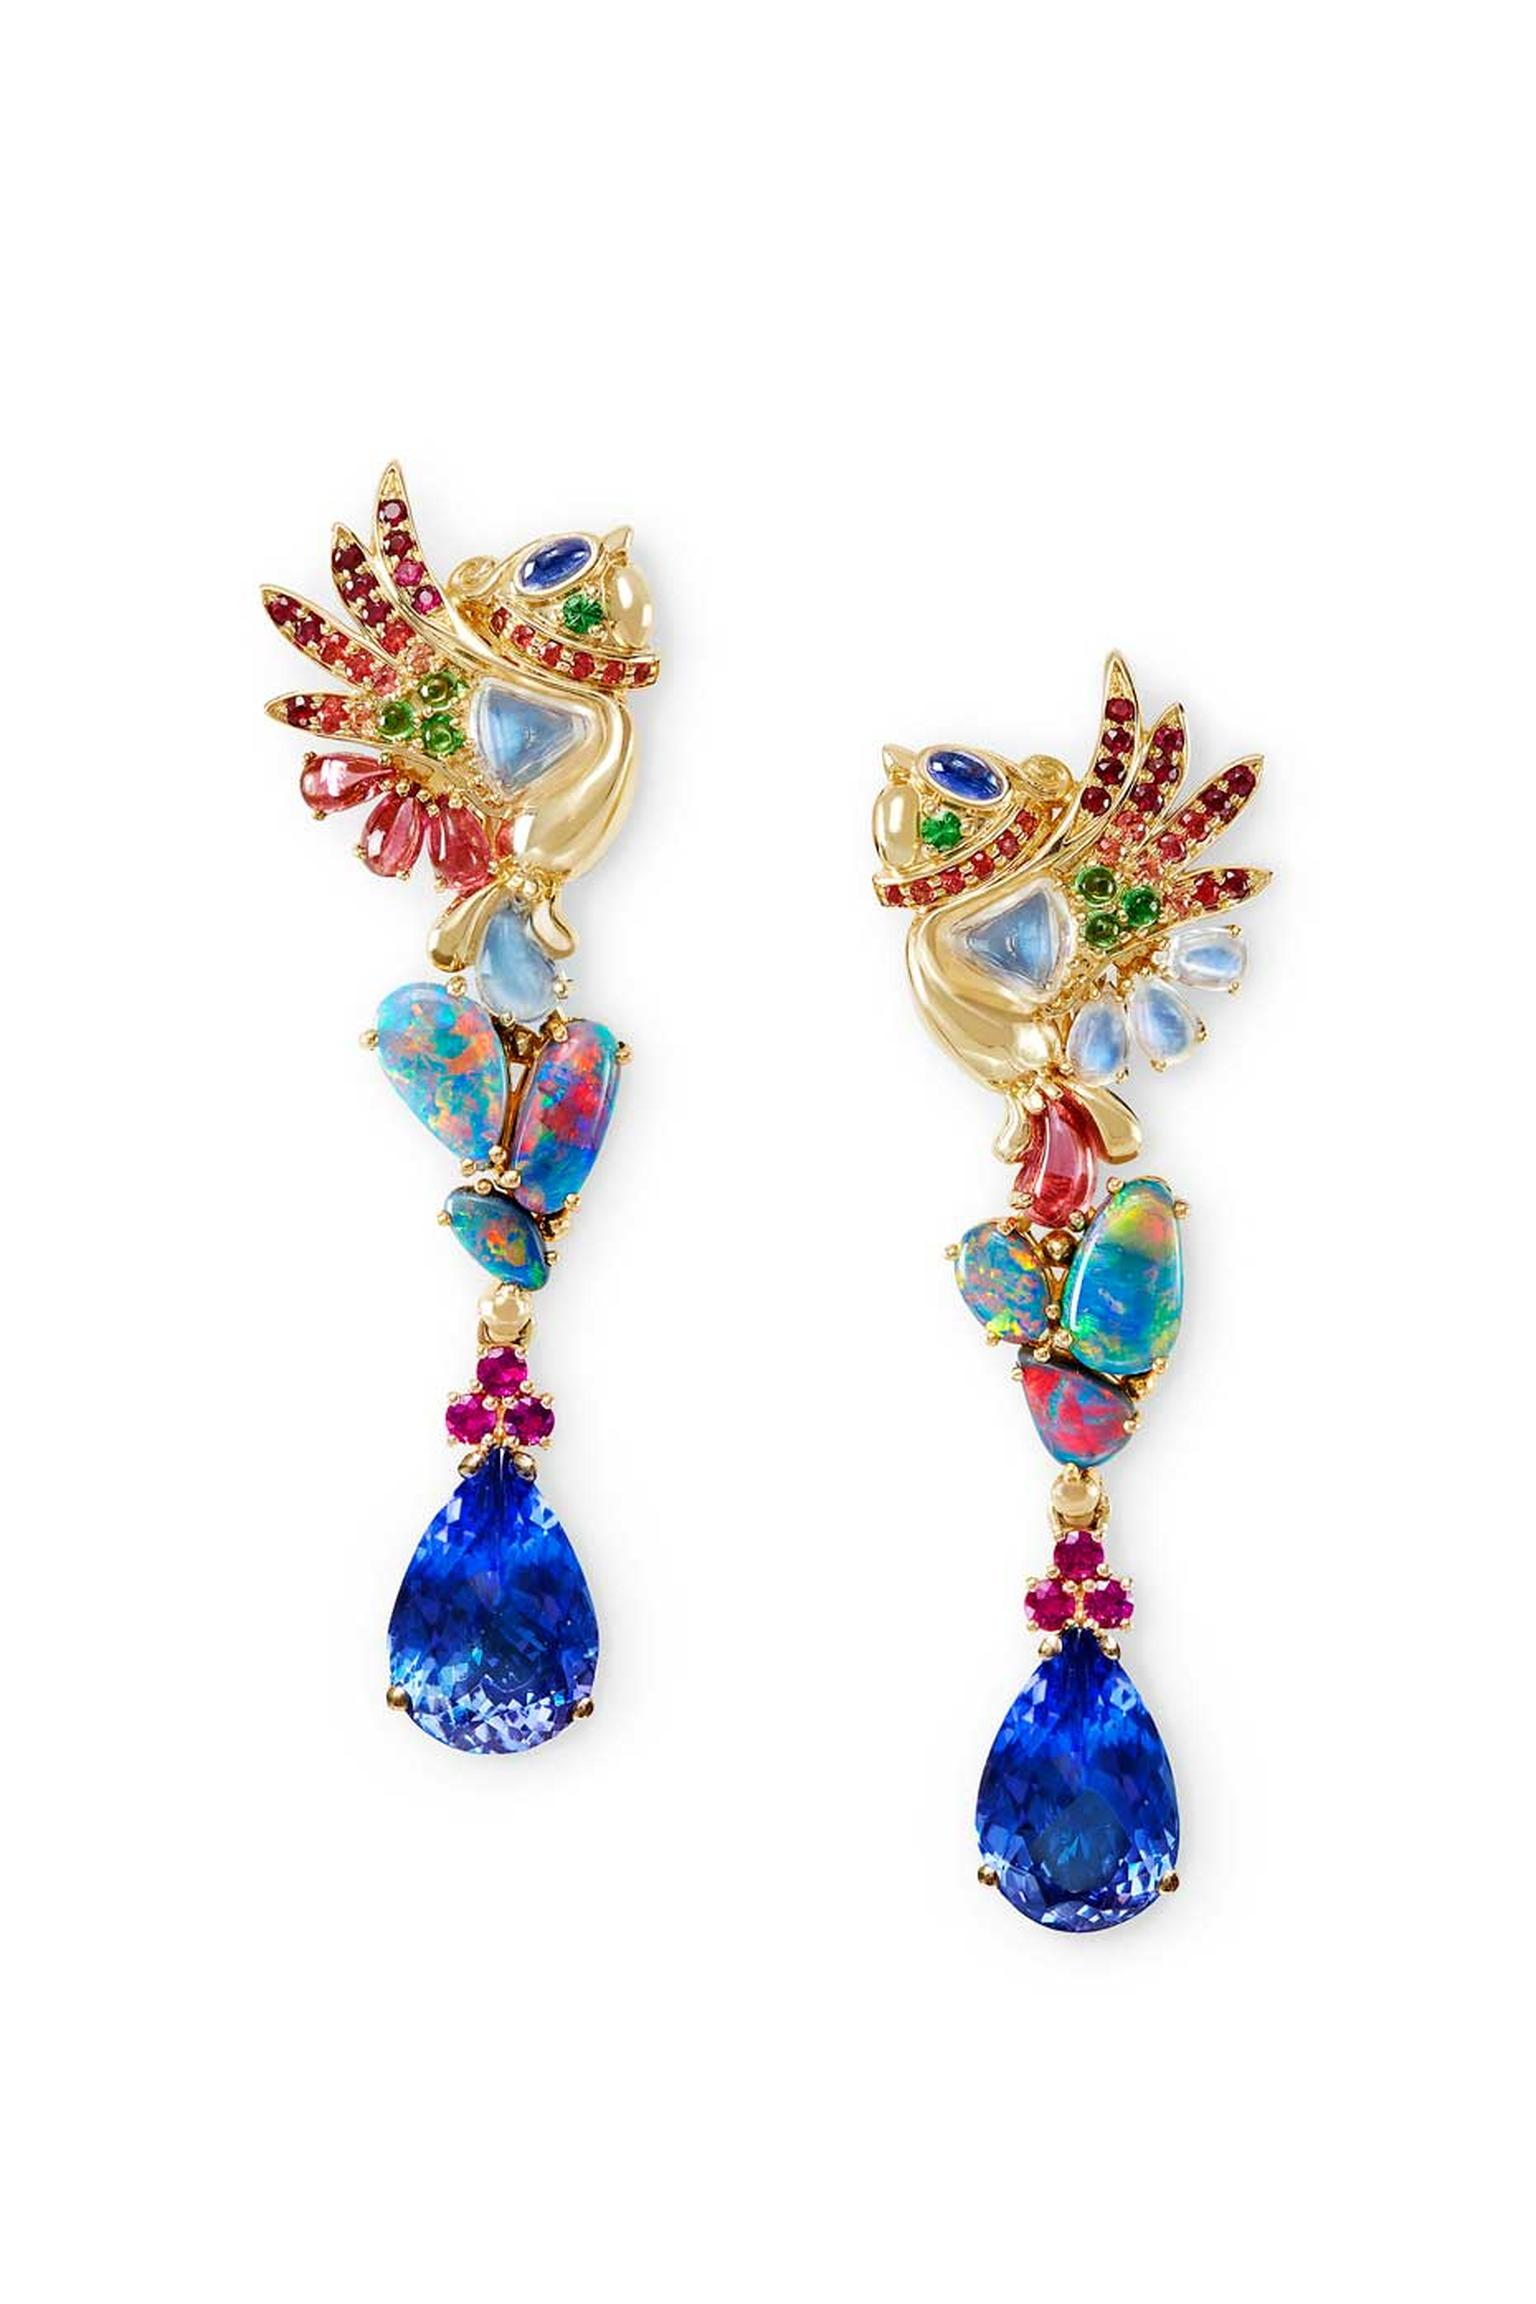 Temple St. Clair Phoenix Chicks earrings with tanzanite, black opal, tourmaline, moonstone, tsavorite and sapphire.